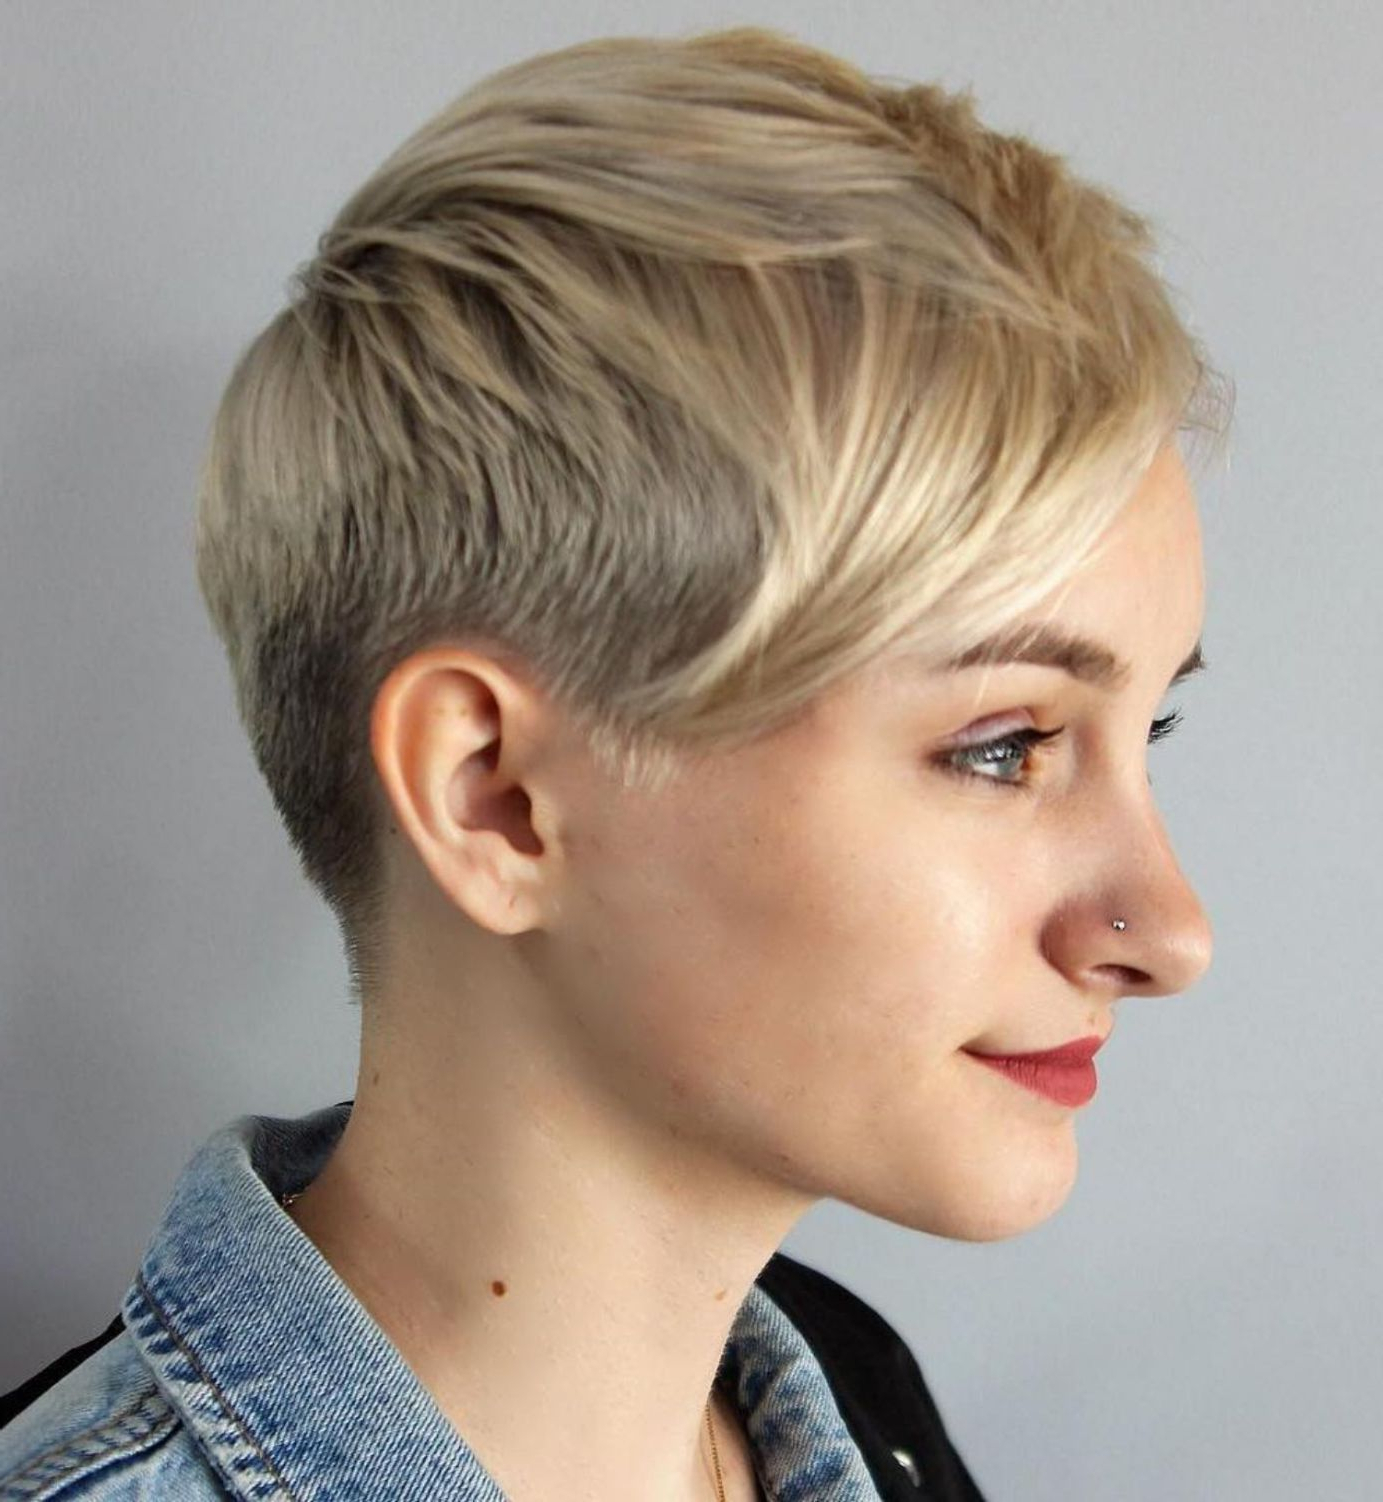 60 Cute Short Pixie Haircuts – Femininity And Practicality | Hair With Tapered Gray Pixie Hairstyles With Textured Crown (View 5 of 20)